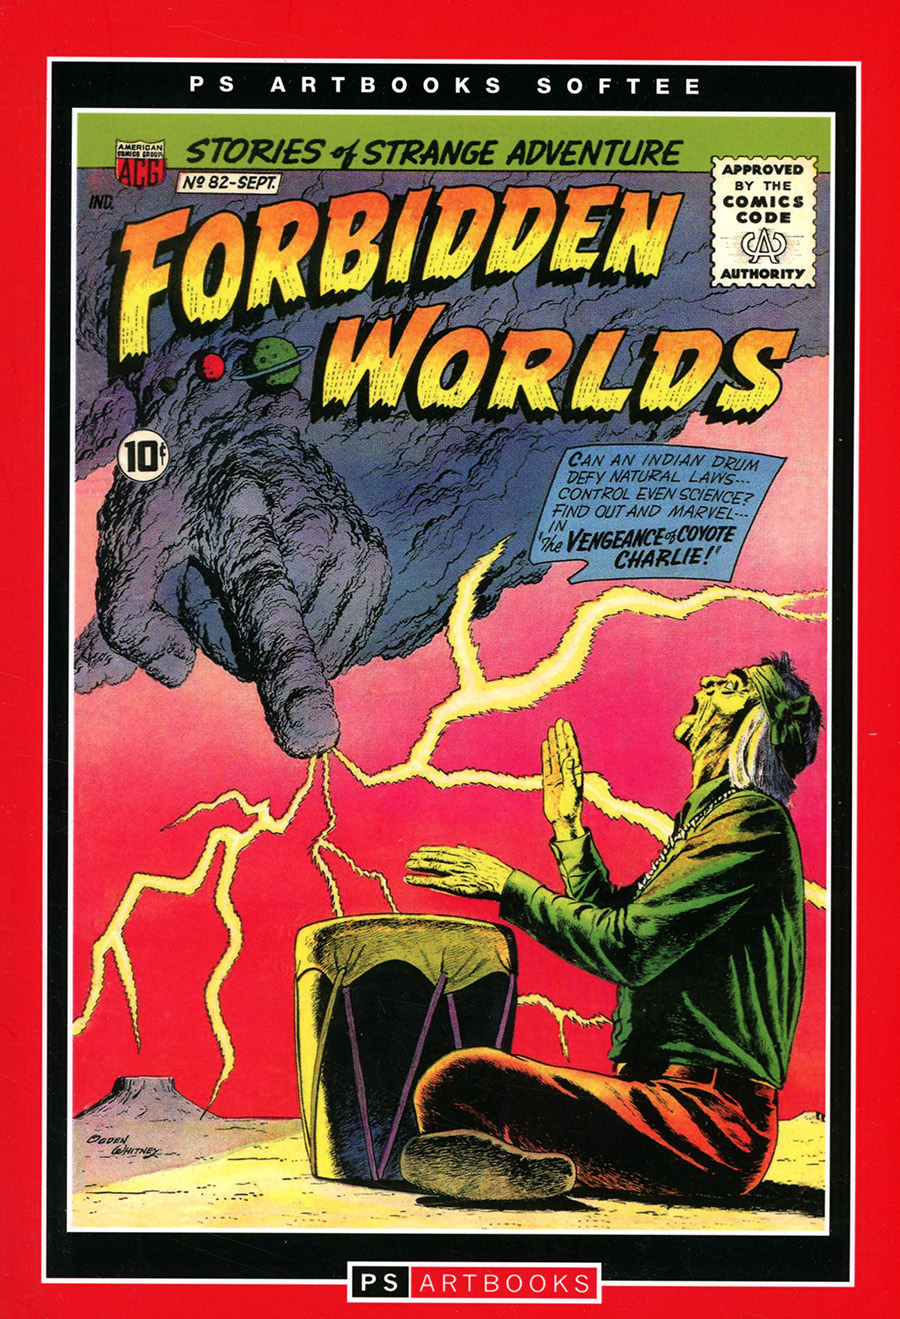 ACG Collected Works Forbidden Worlds Softee Vol 13 TP